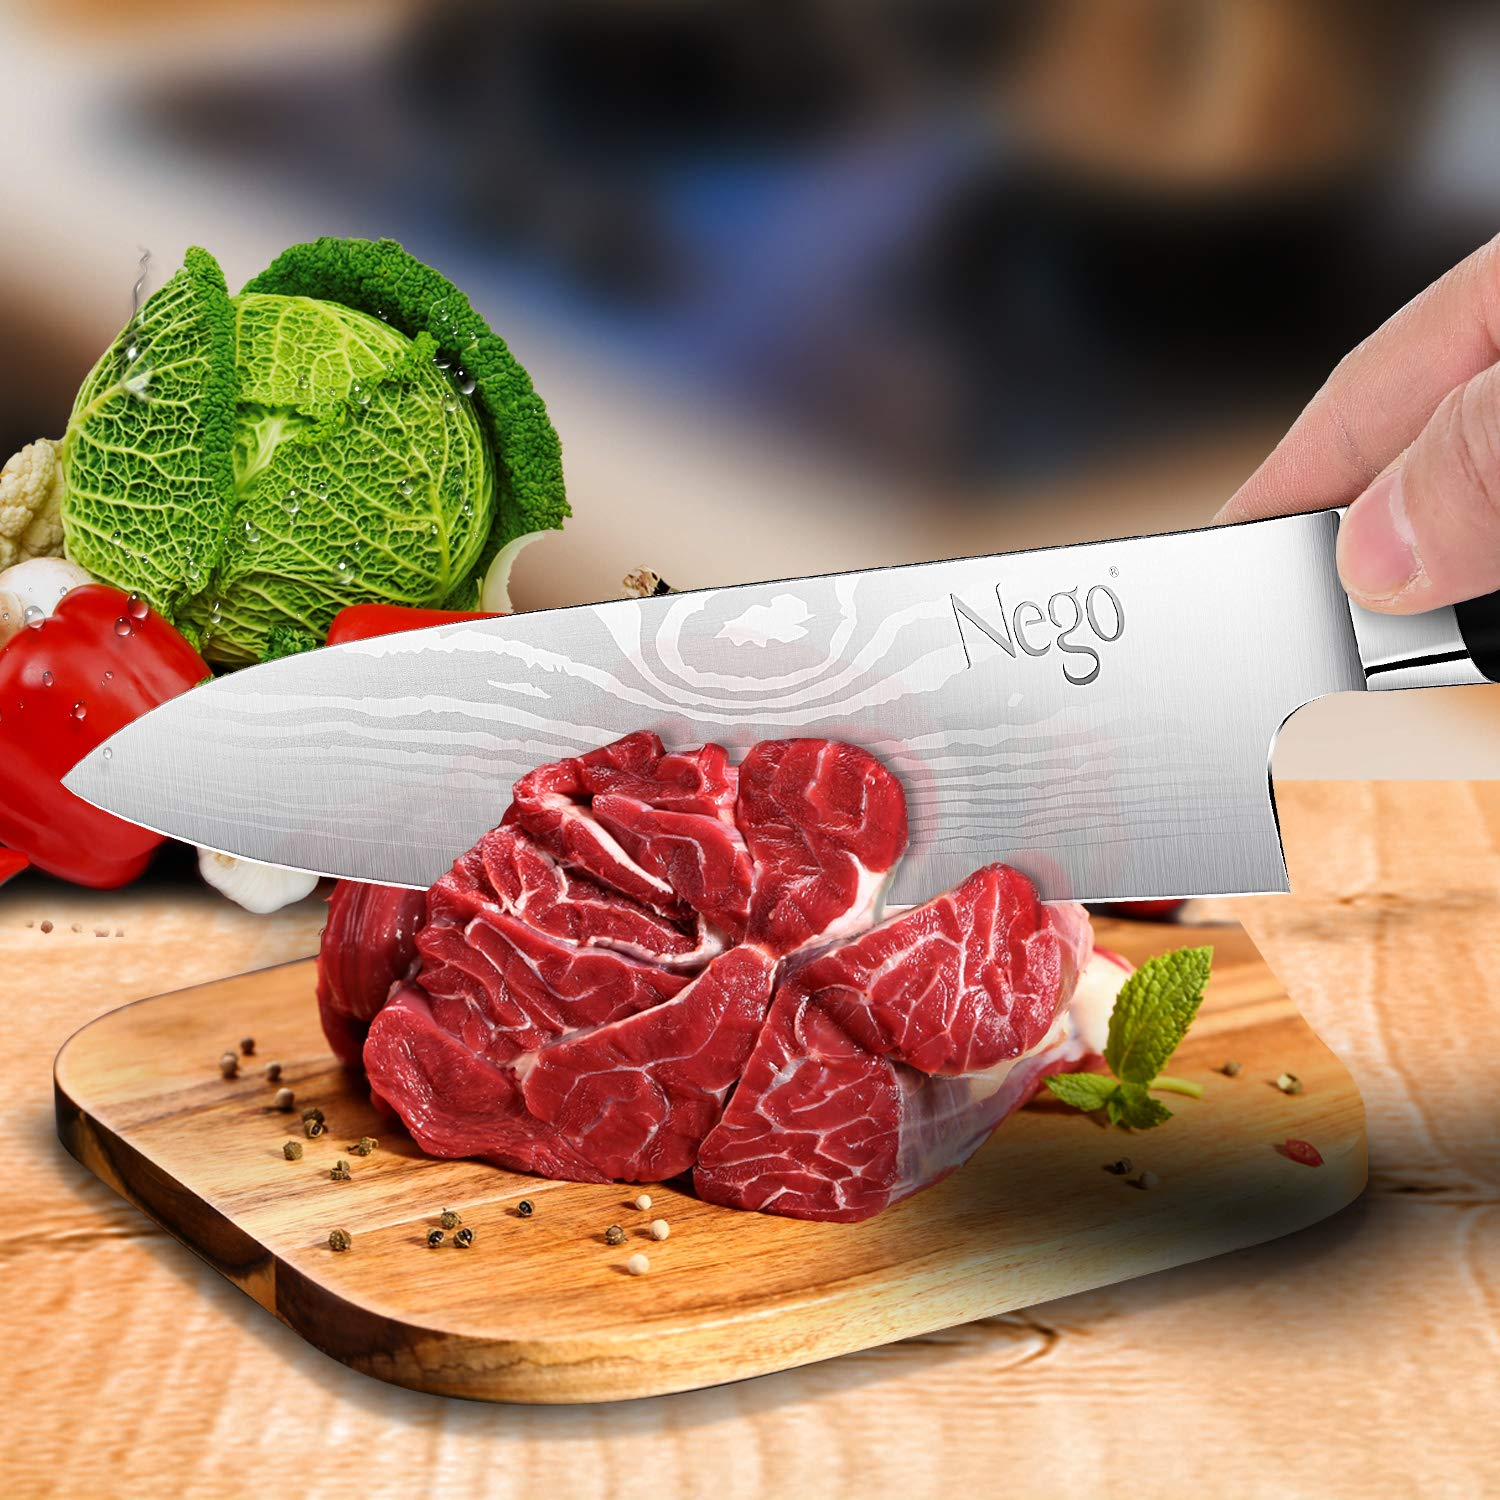 Chef Knife - Pro Chef knives 8 inch Cooking knife, German High Carbon Stainless Steel Razor Sharp Blade Stain Resistant, Best Choice for Restaurant and Home Kitchen by Nego (Image #5)